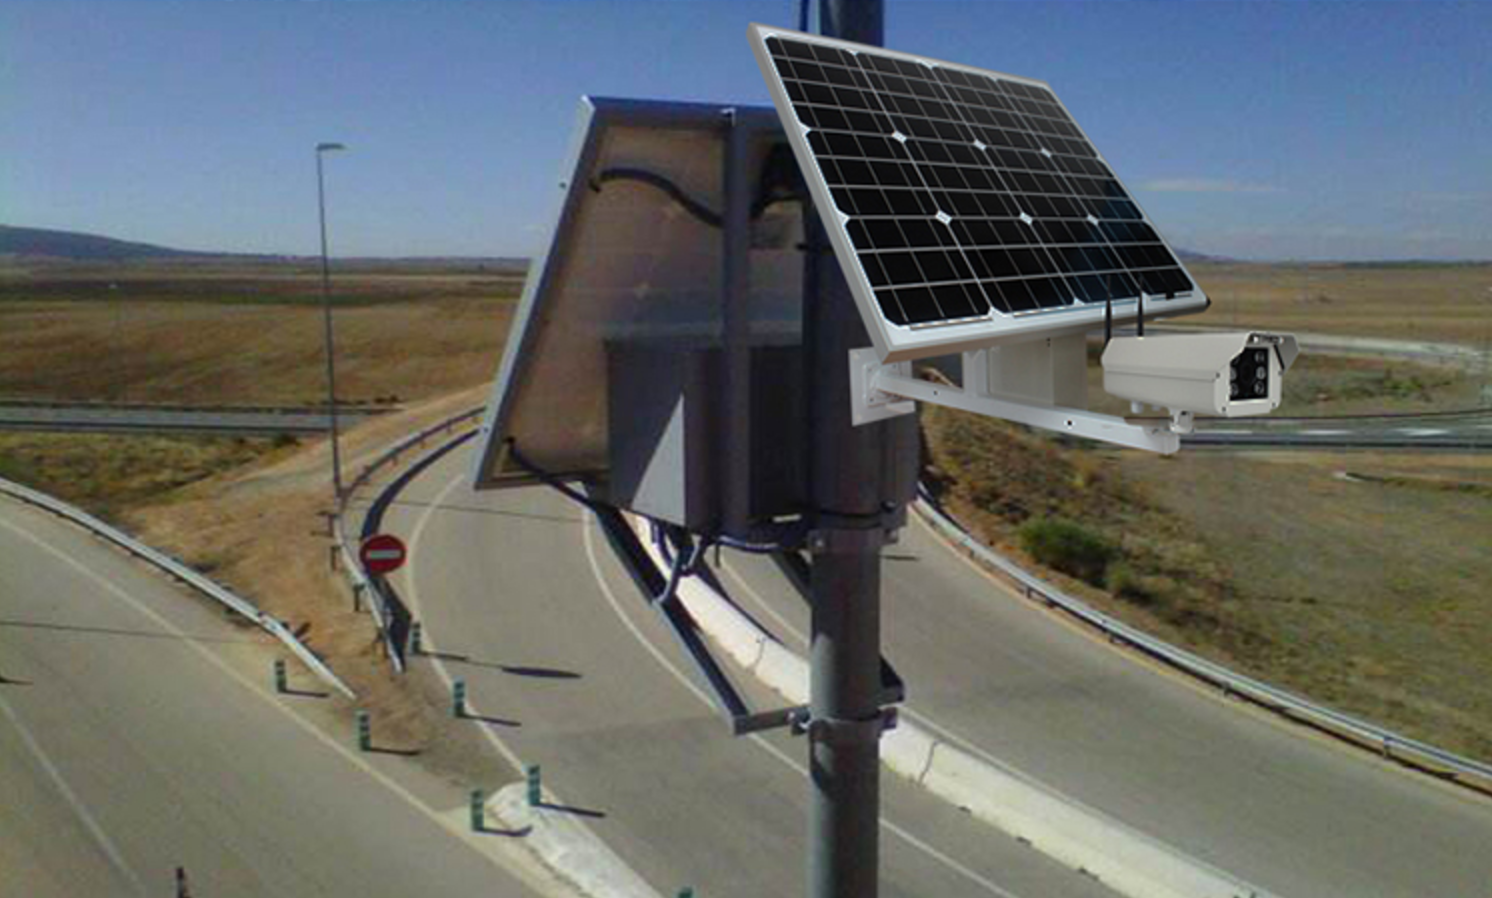 Sunwebcam Provides An Affordable Traffic Monitoring For Towns Of Any Size Saving The Cost Of Typical Solutions Involv Bullet Camera Site Plan Roof Solar Panel